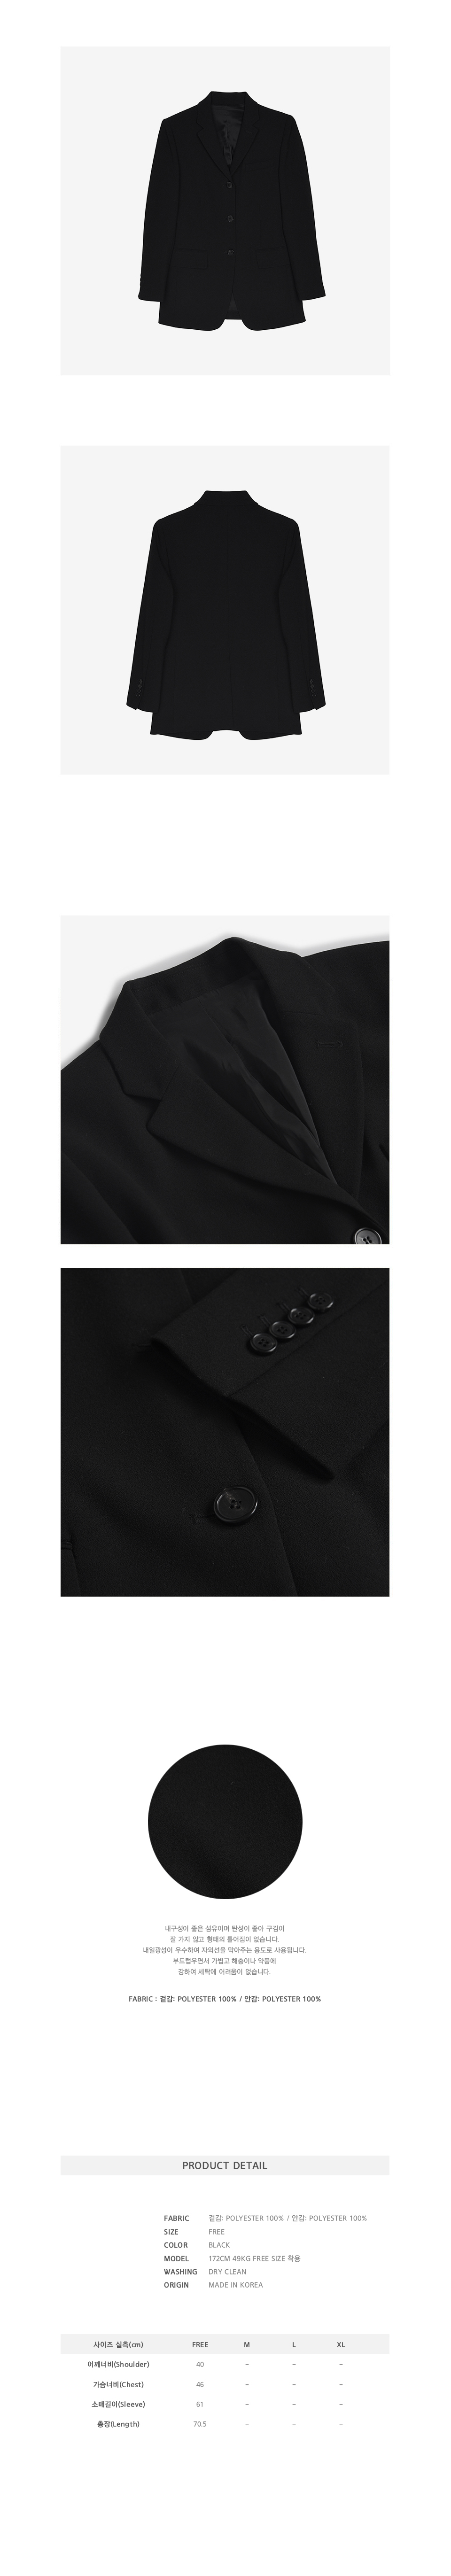 닉앤니콜(NICK&NICOLE) Matt Slim Single Jacket_Black